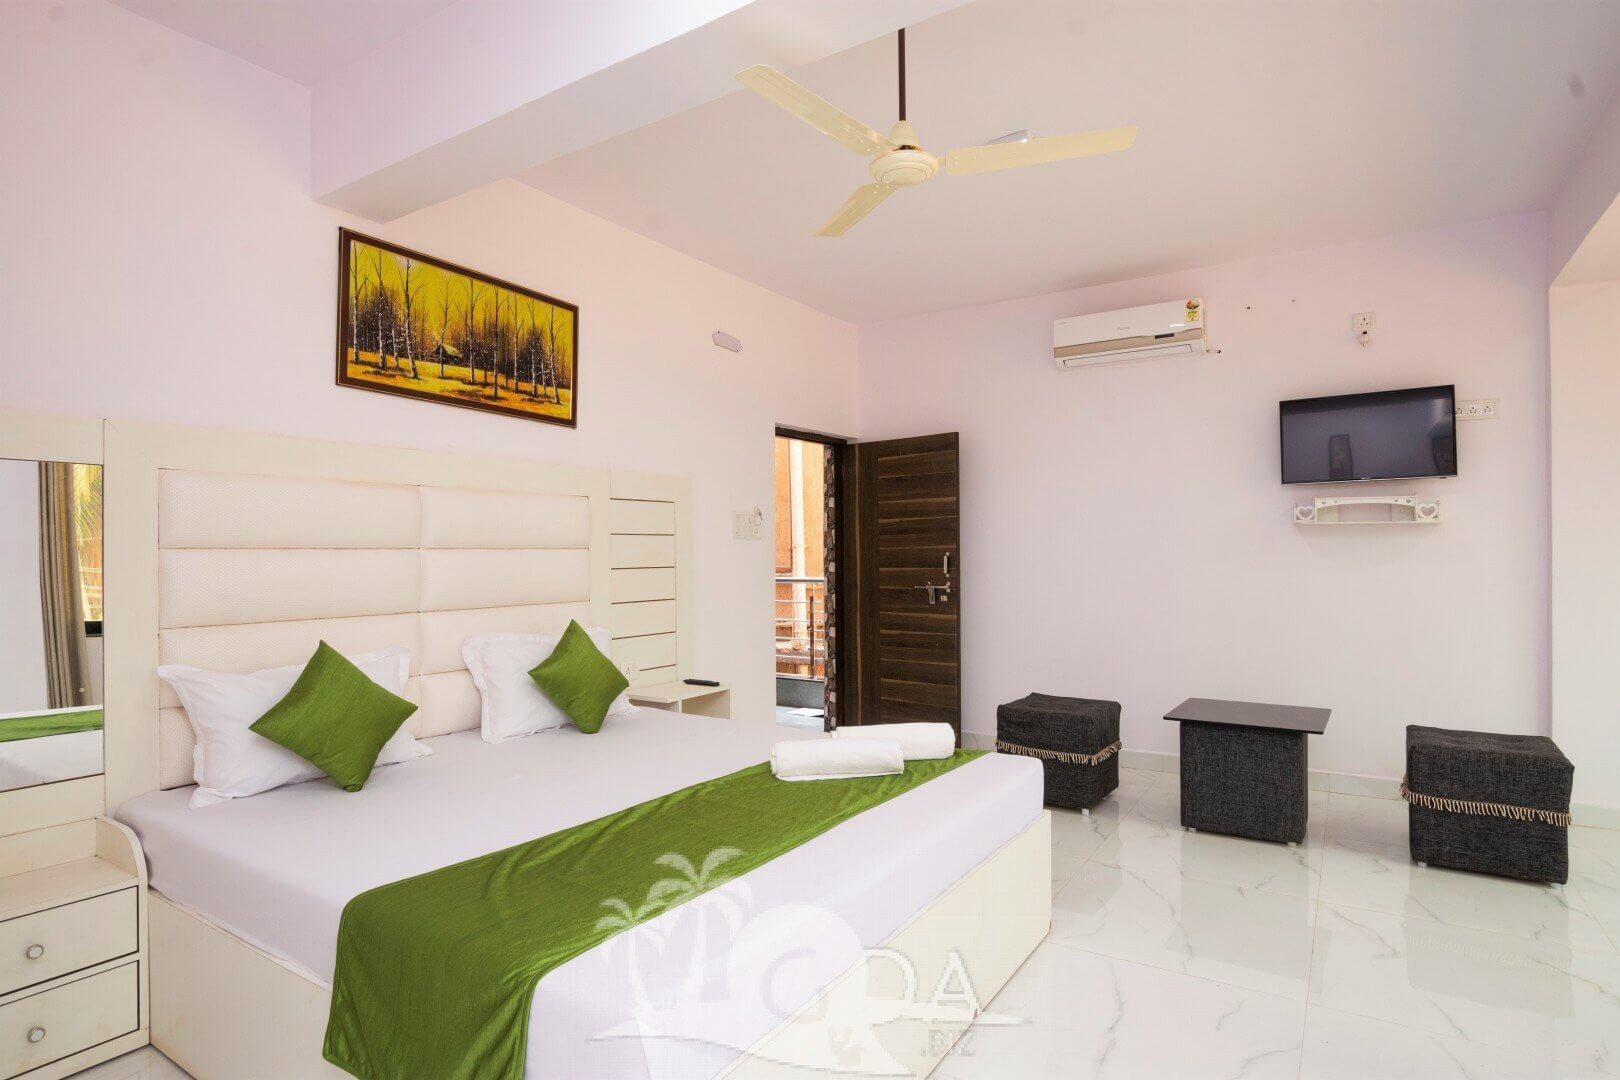 Ansh Vansh Holiday Homes